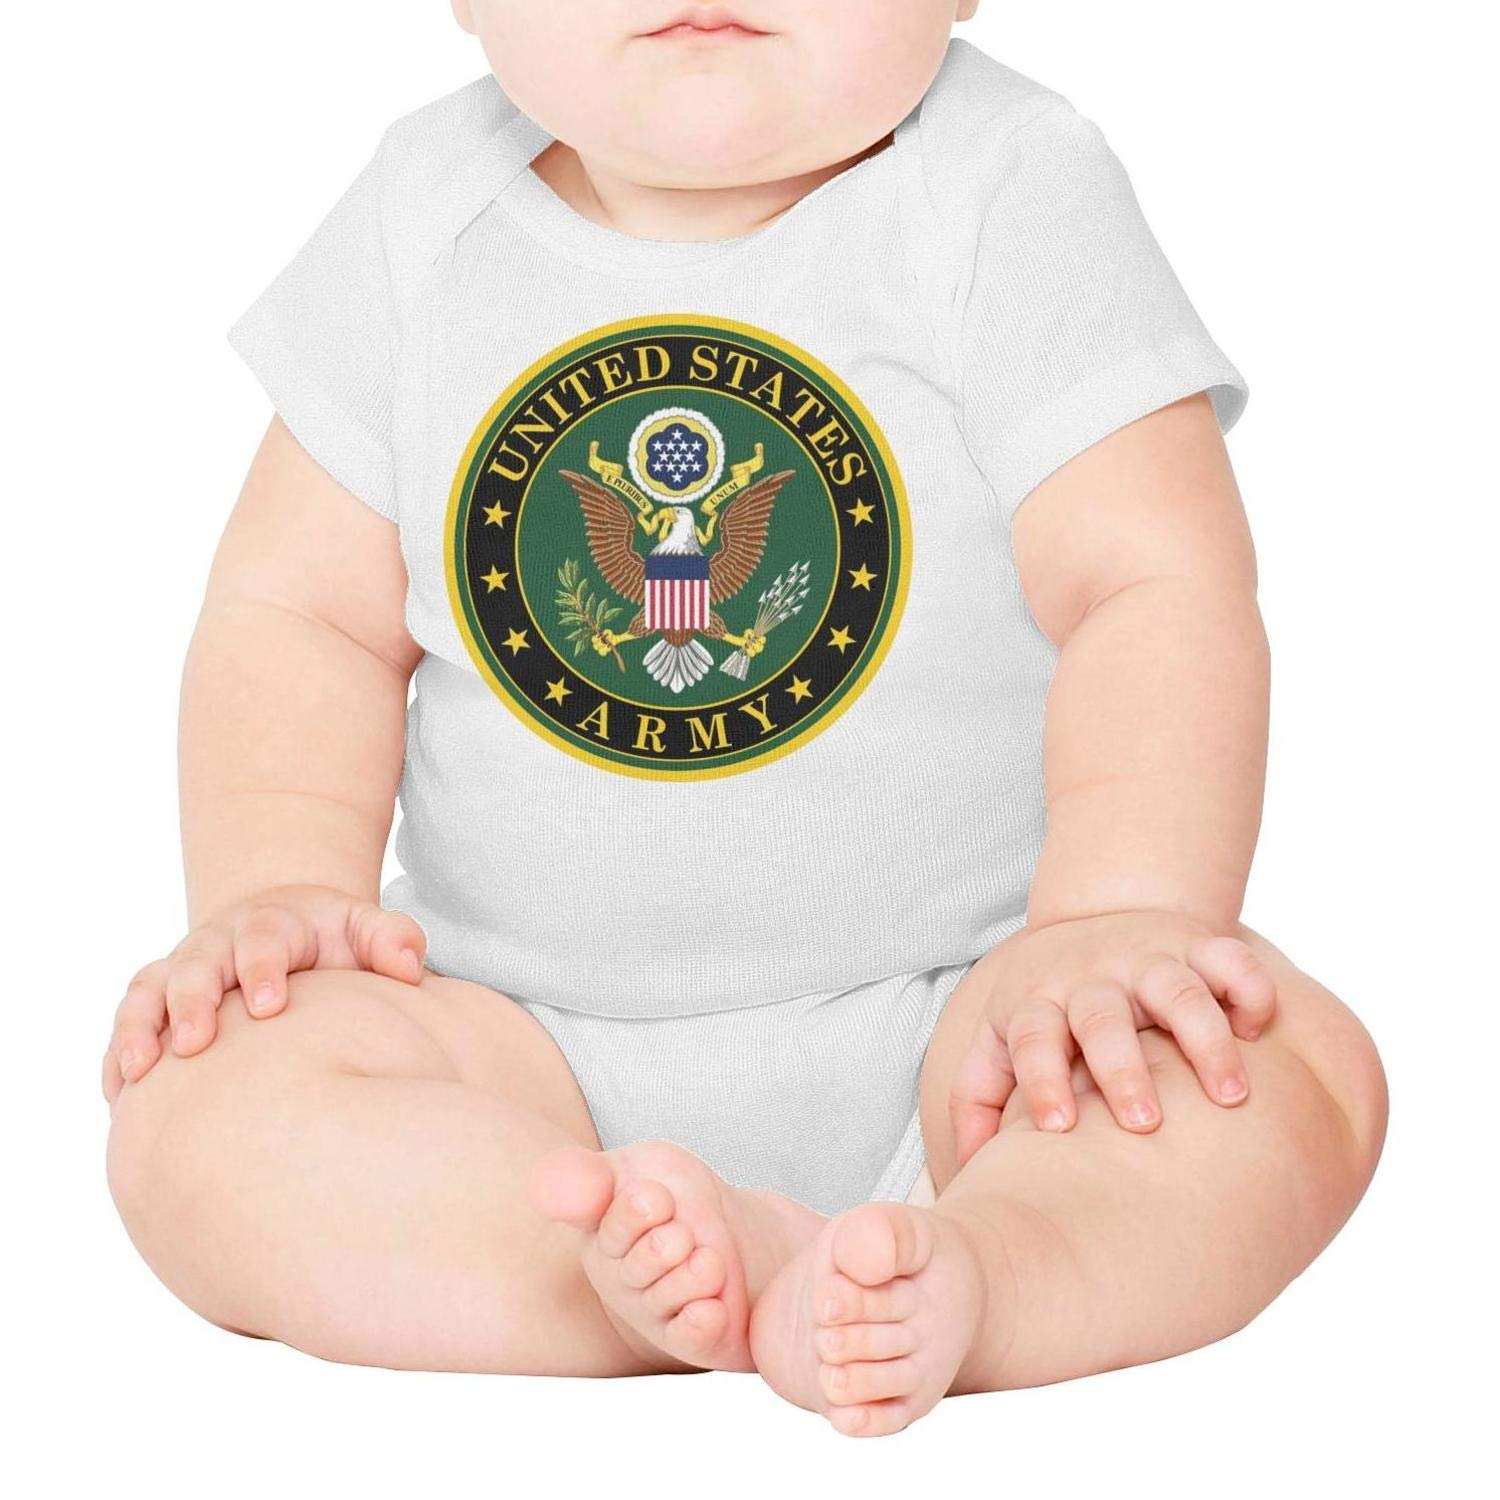 Armed Forces Day Military Service Mark of The United States Army Baby Onesies Bodysuit Organic One-Piece Cotton Short Sleeve